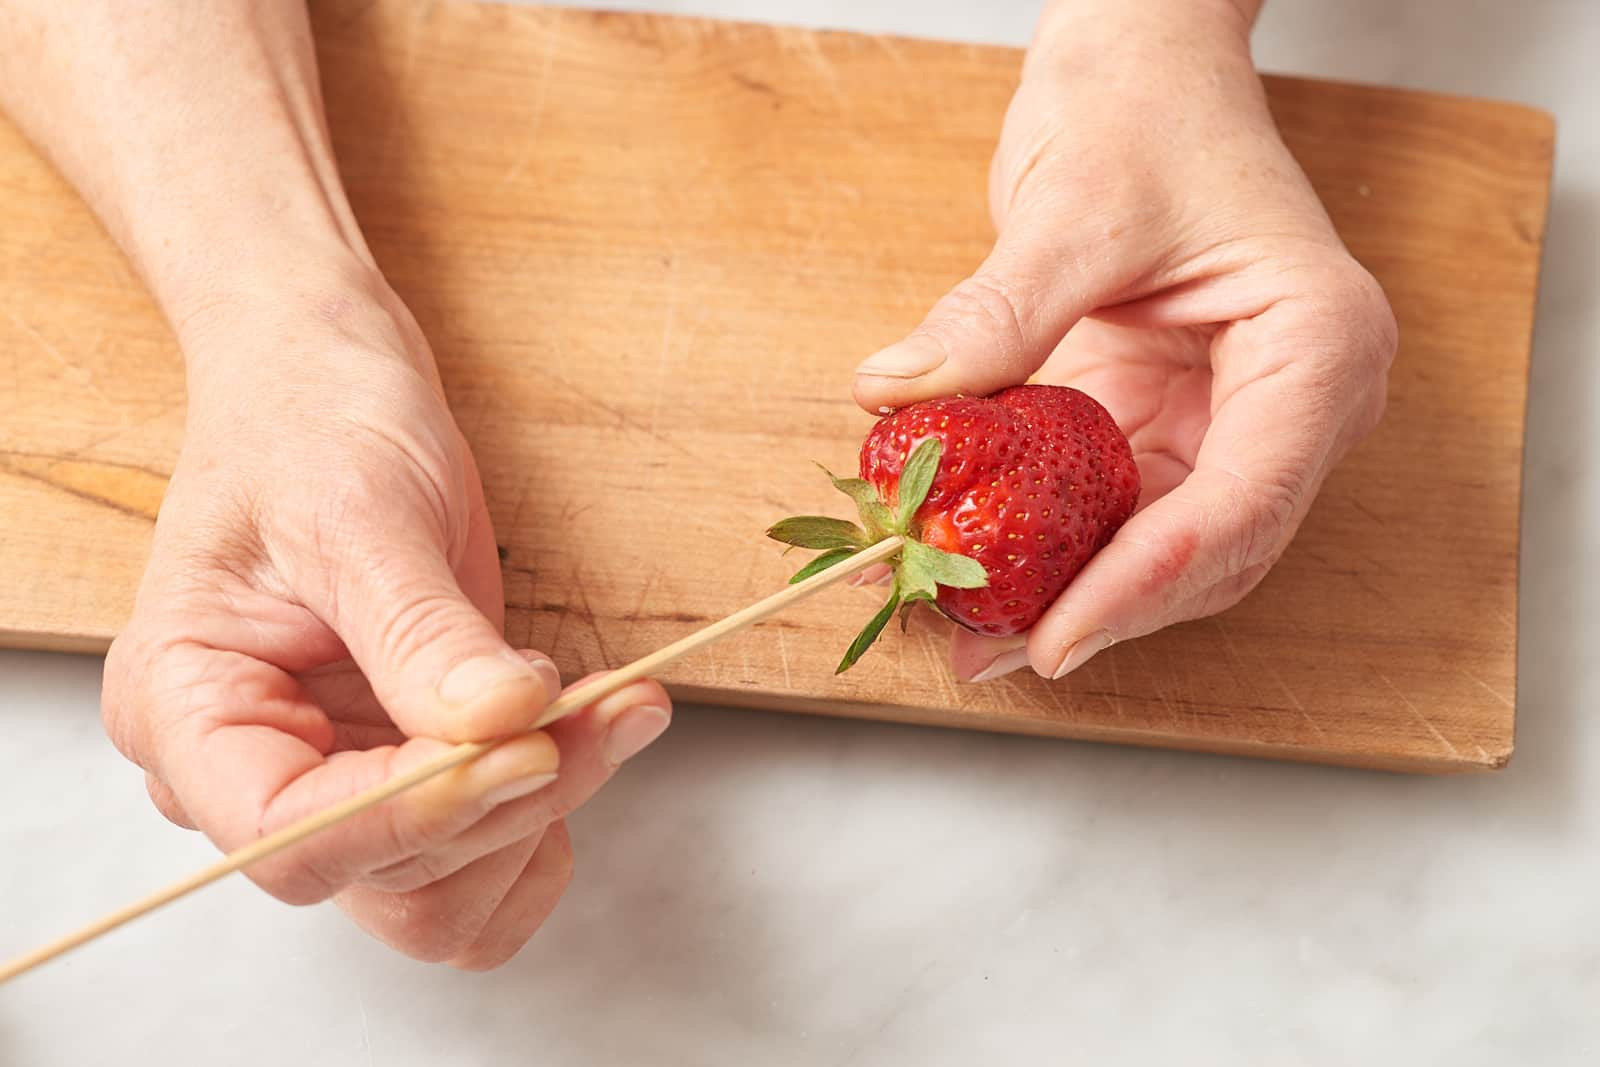 How To Make Strawberry Roses: gallery image 1